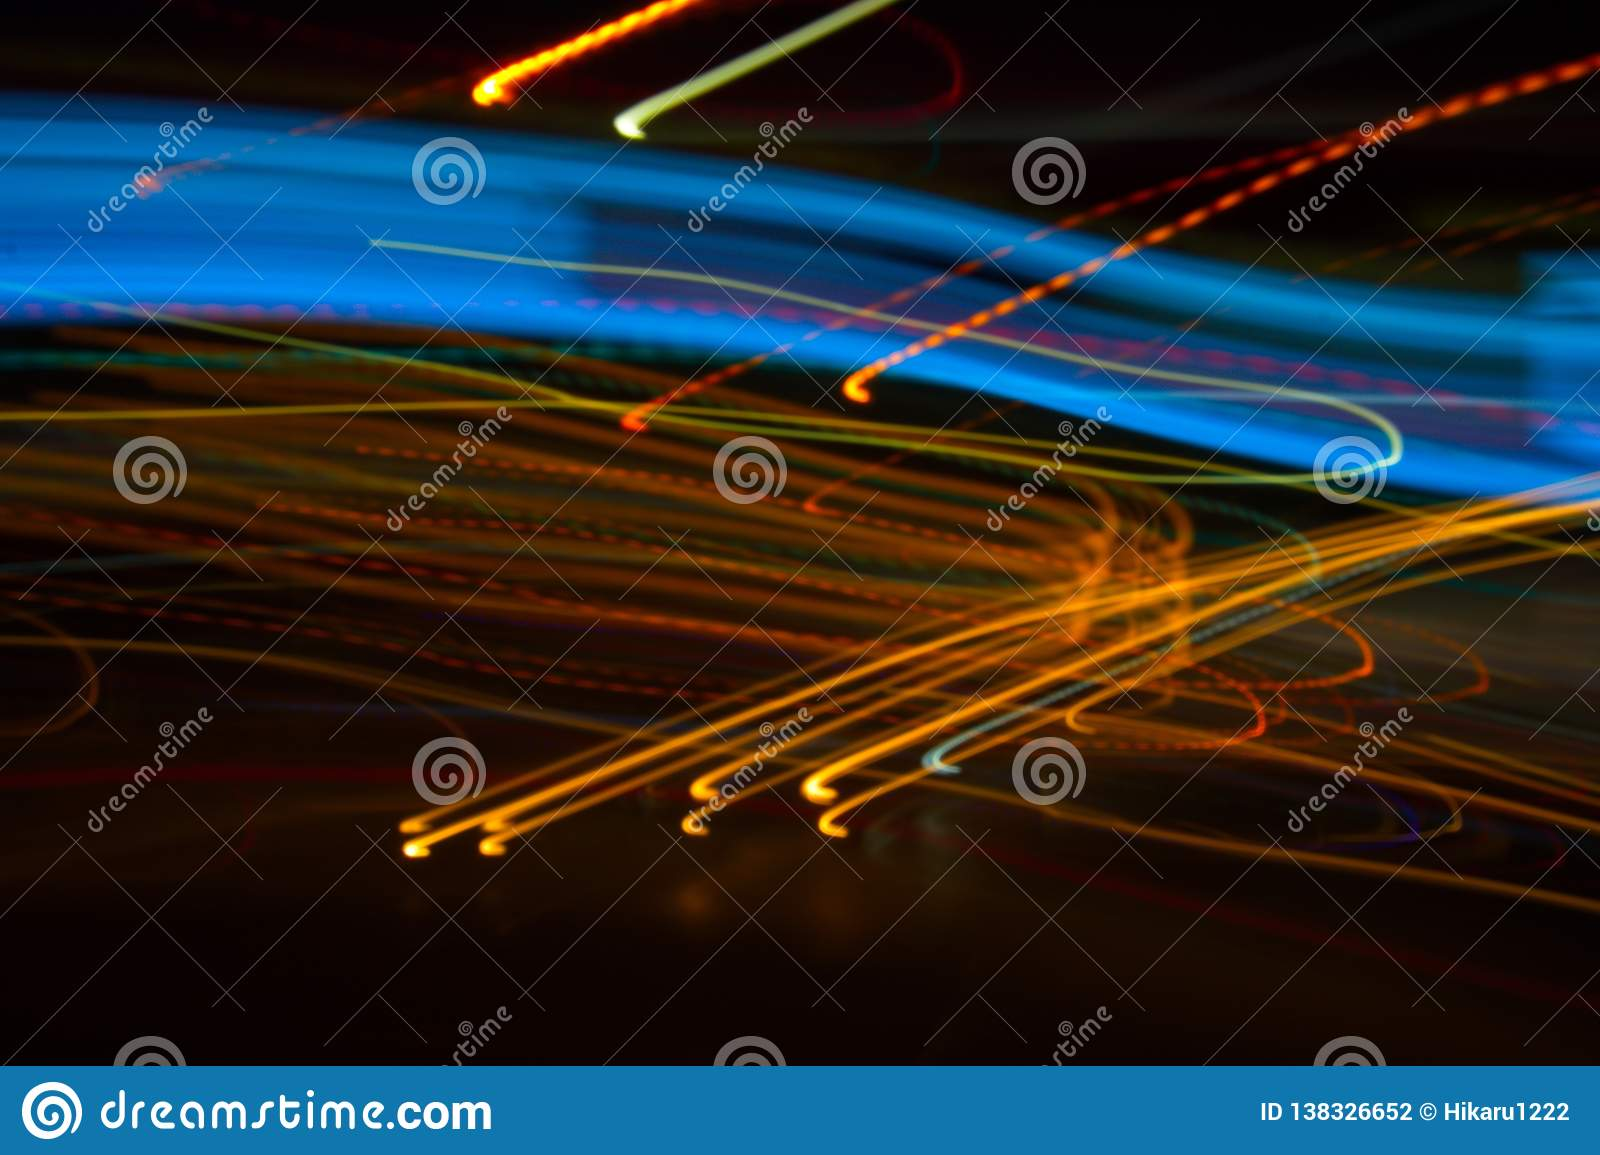 Abstract beautiful light painting photography, waves abstract light on black background